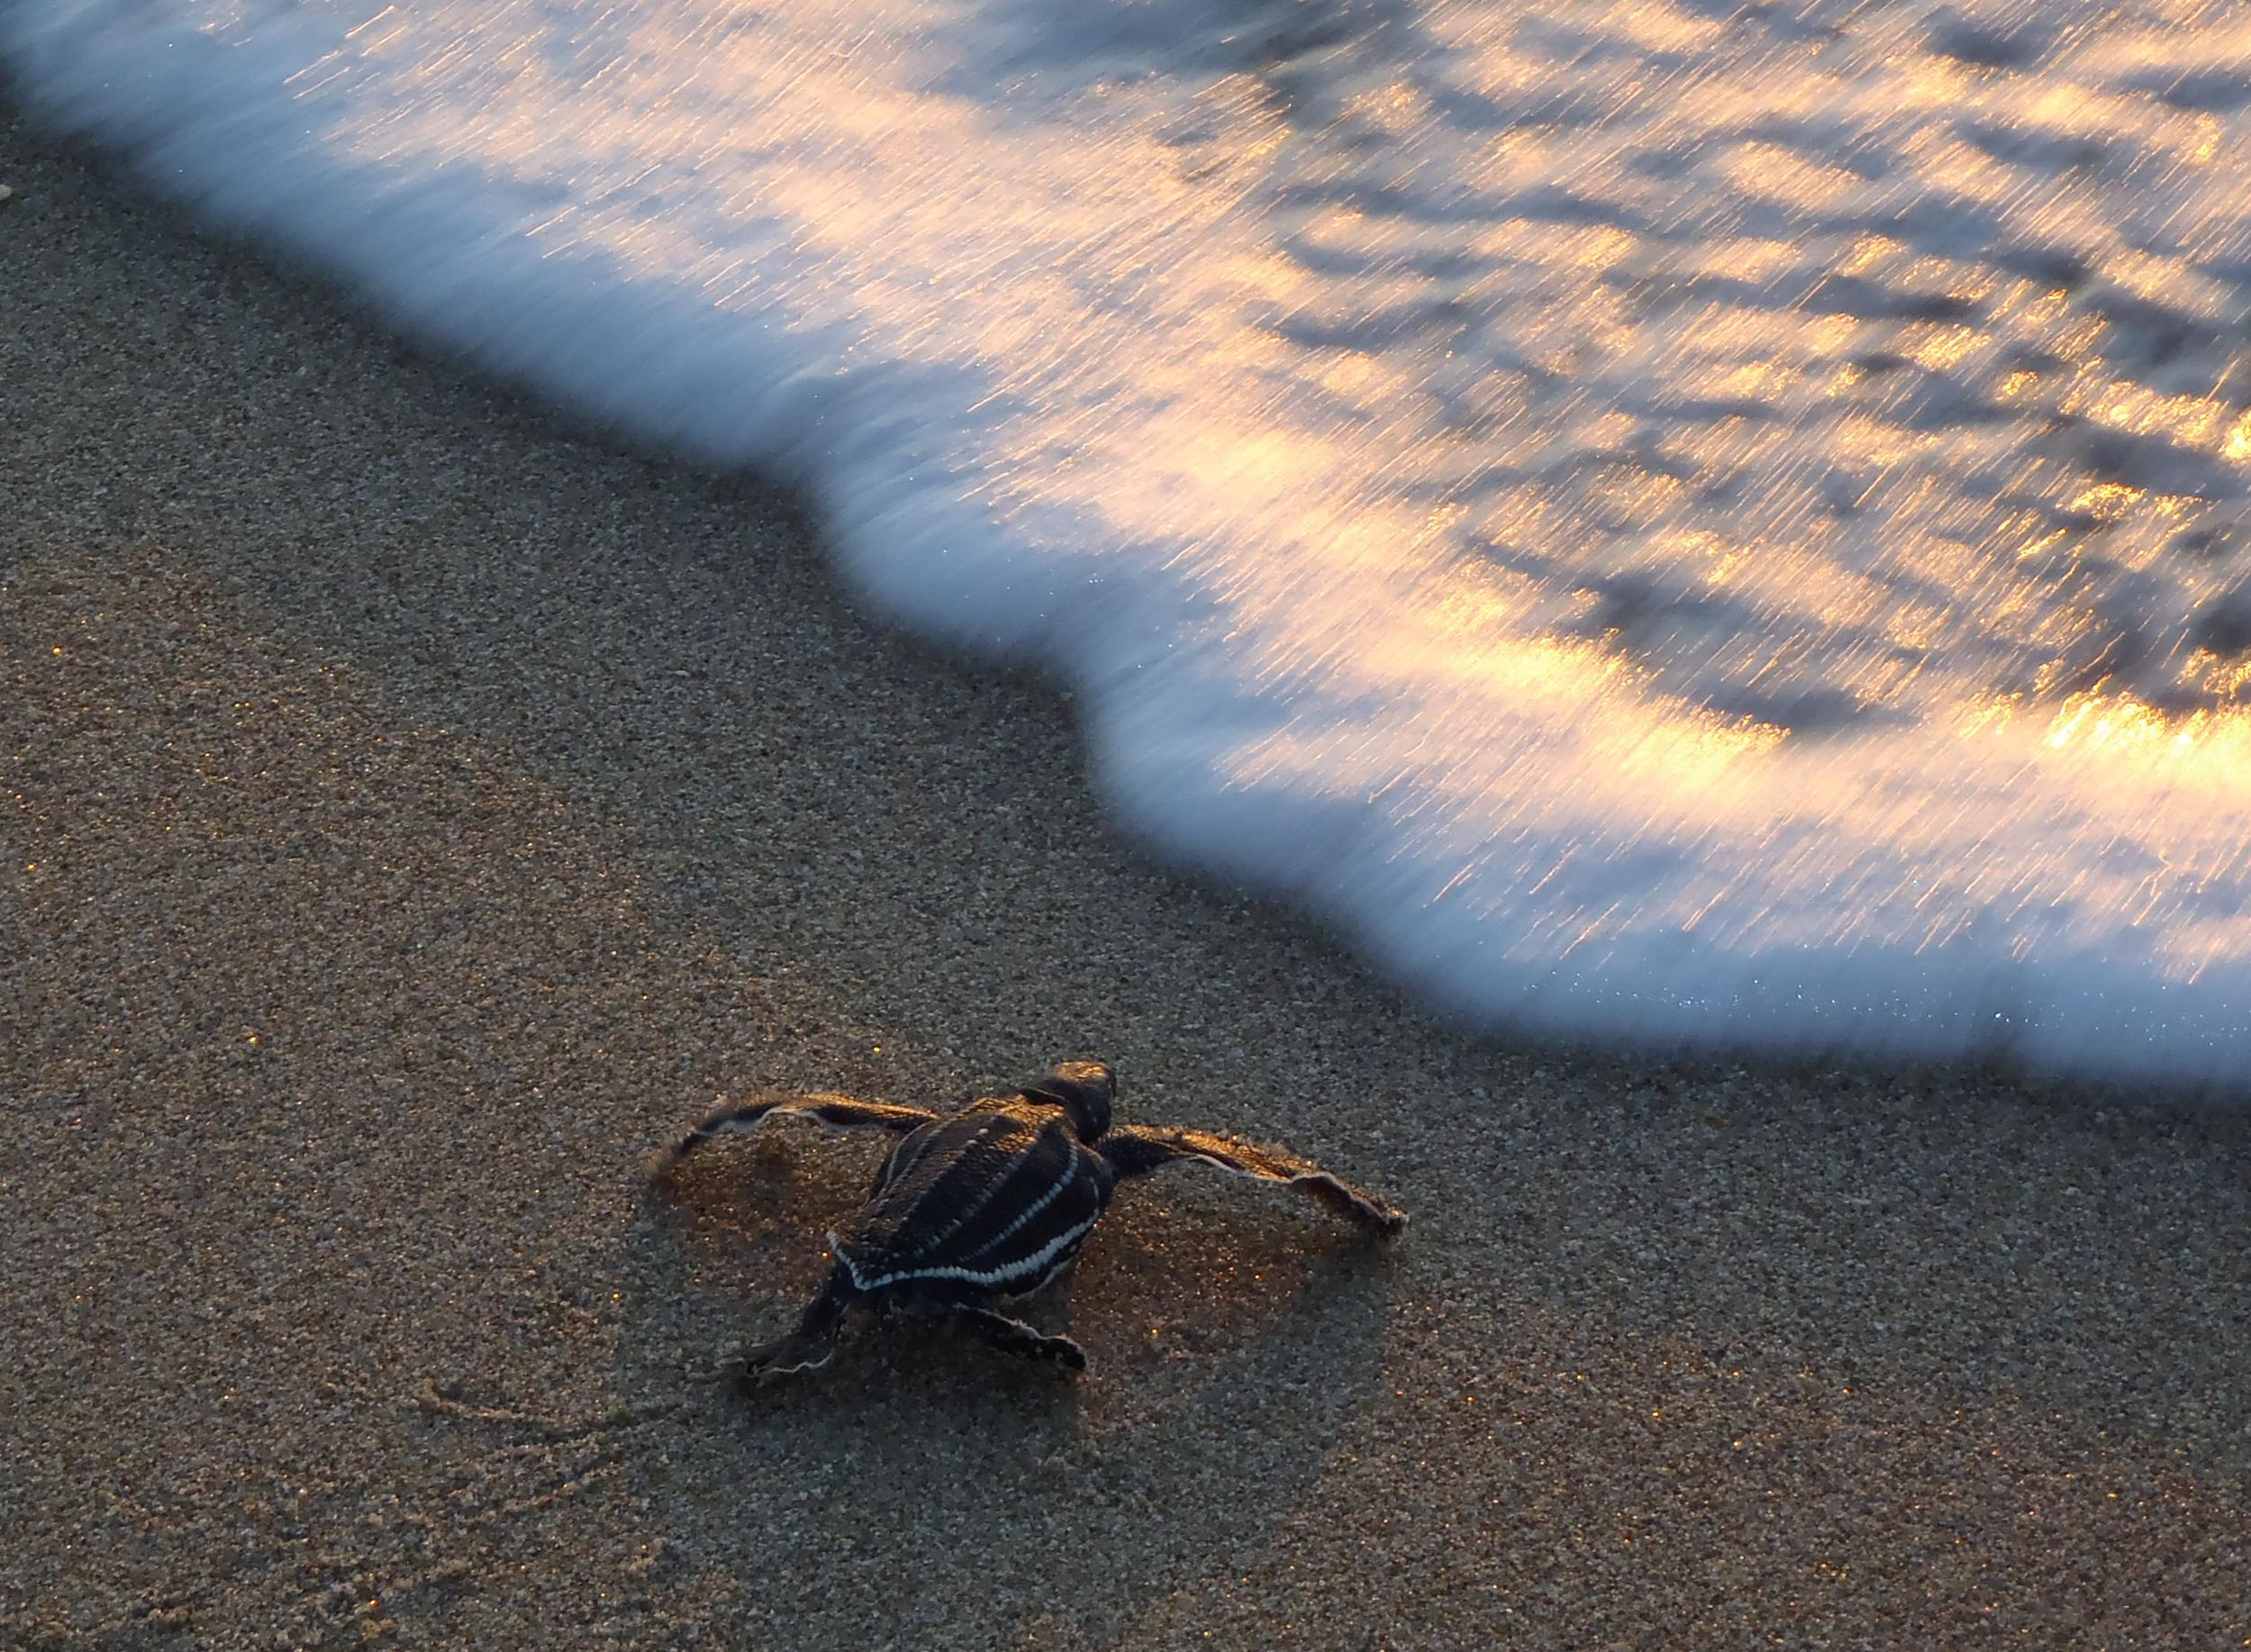 POTD: Leatherback hatchling at sunrise on Singer Island, Florida, USA myd.as/p6747